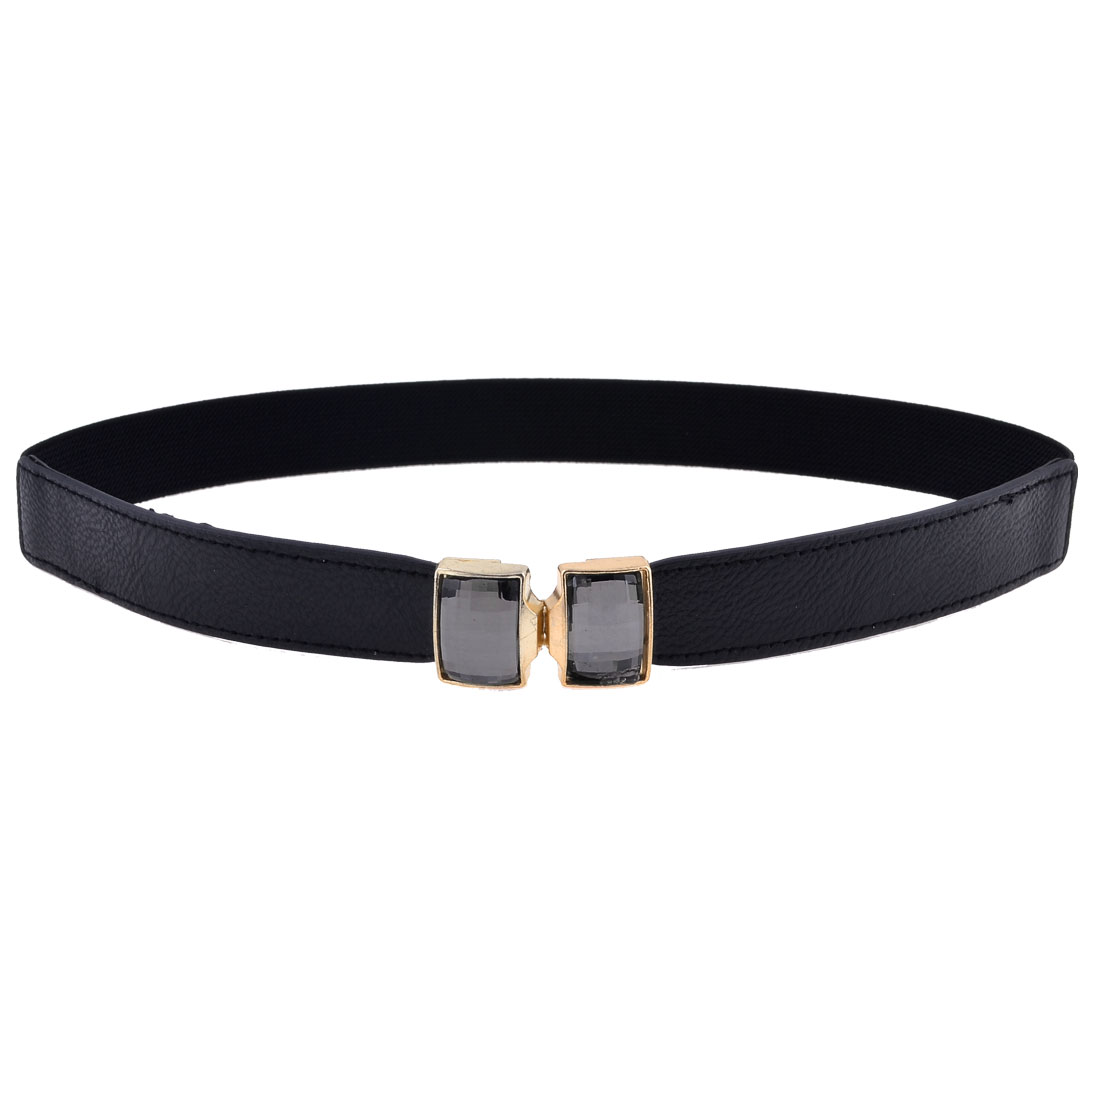 Plastic Craystal Accent Interlocking Buckle Elastic Waist Belt Black for Ladies